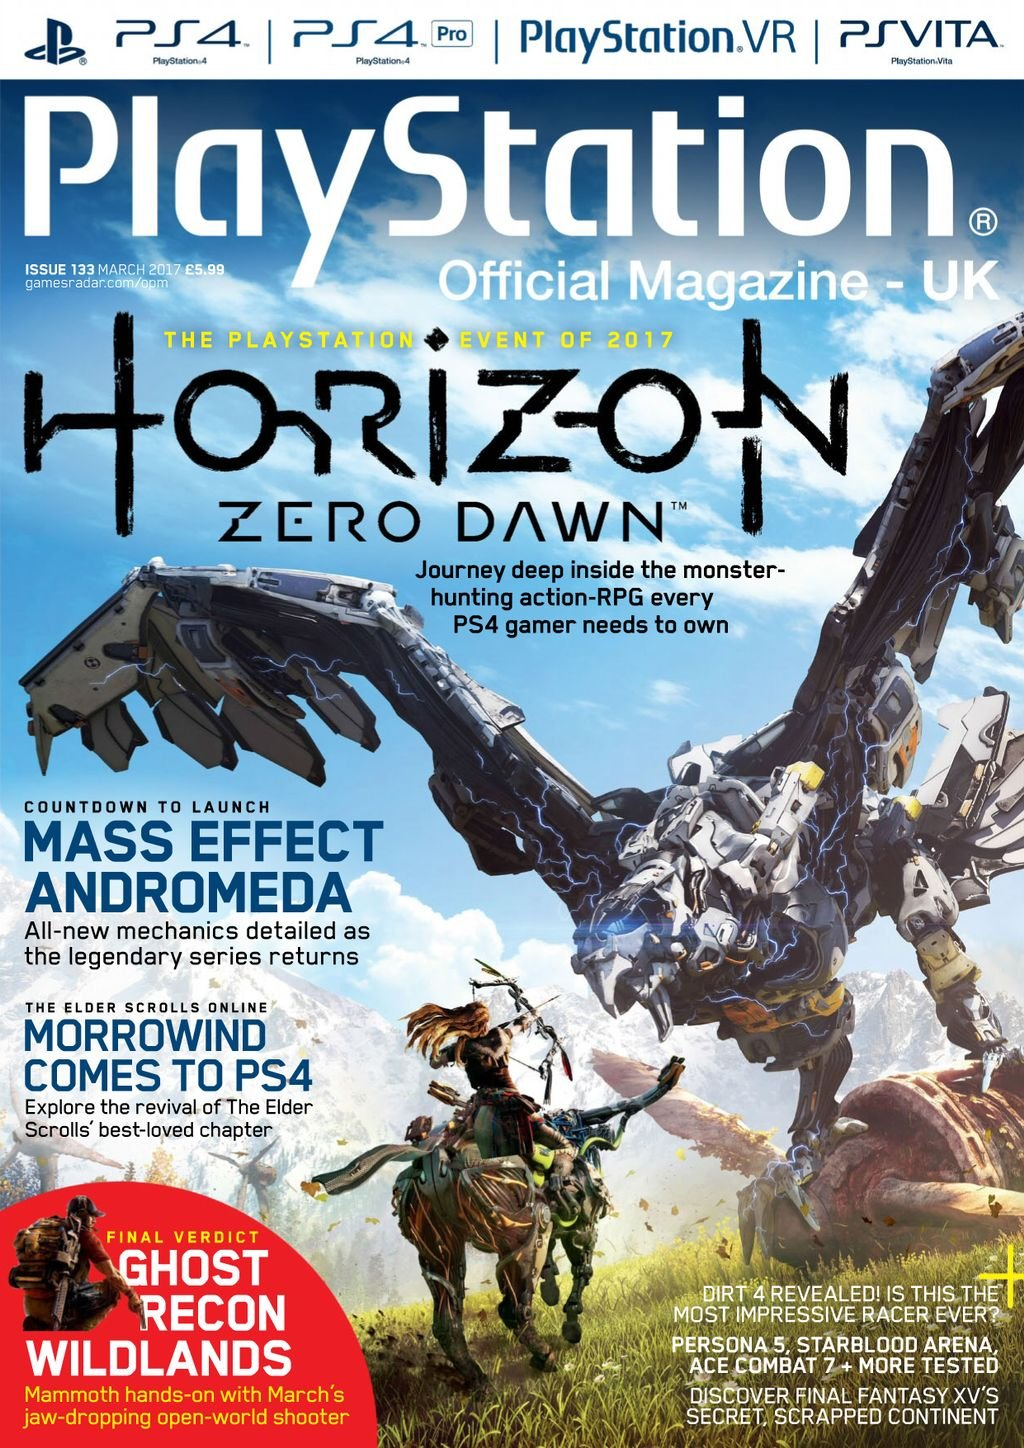 Playstation Official Magazine UK 133 (March 2017)